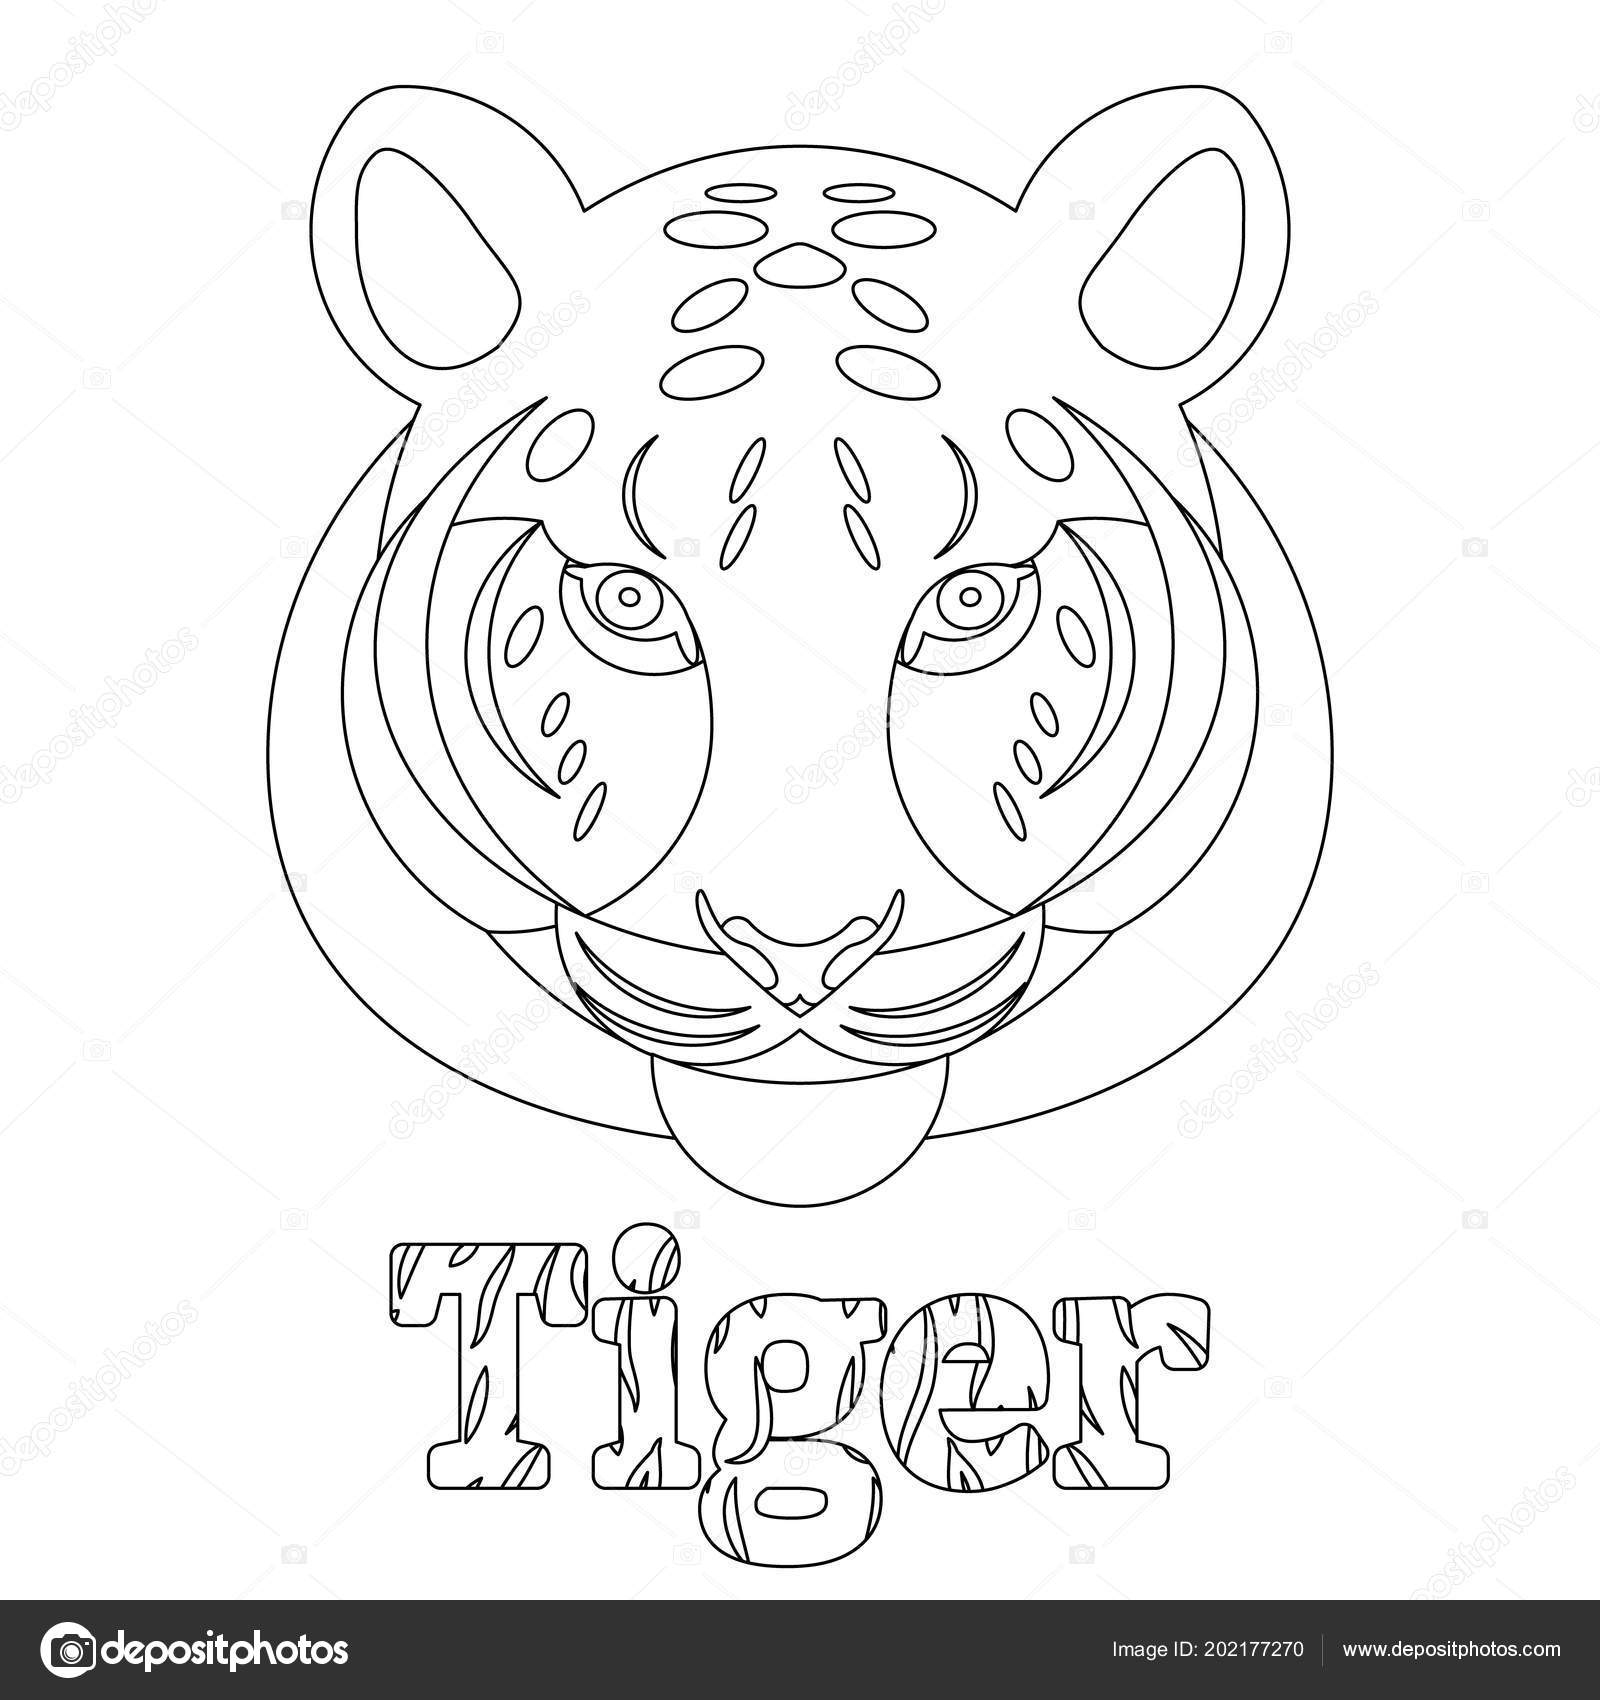 Tiger Coloring Page Kids Wild Mammal Animal Linear Style ...